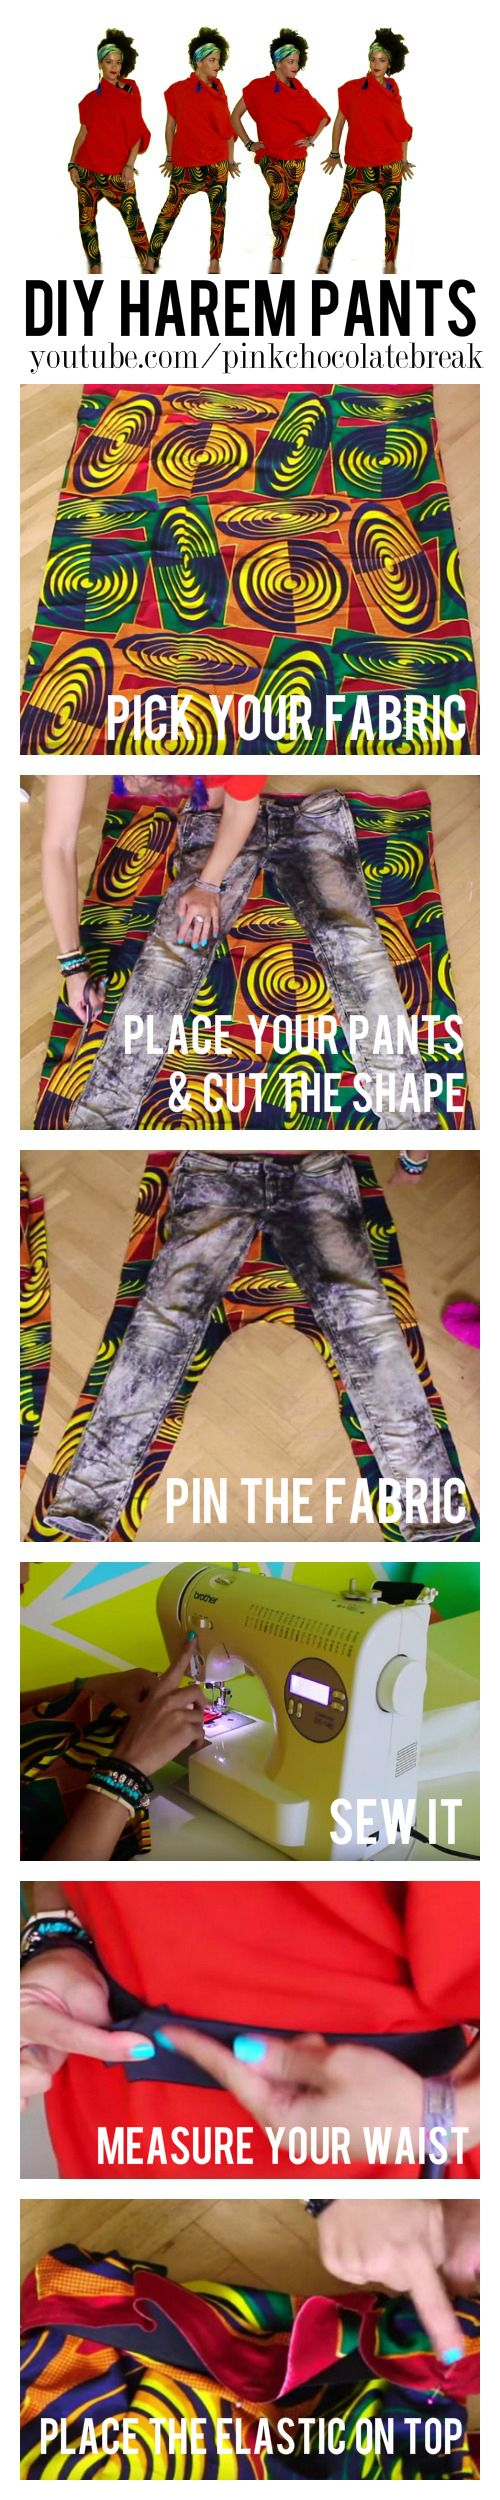 How To Make DIY Harem Pants in 20 min. Quick and easy instructions for this fun, cool style